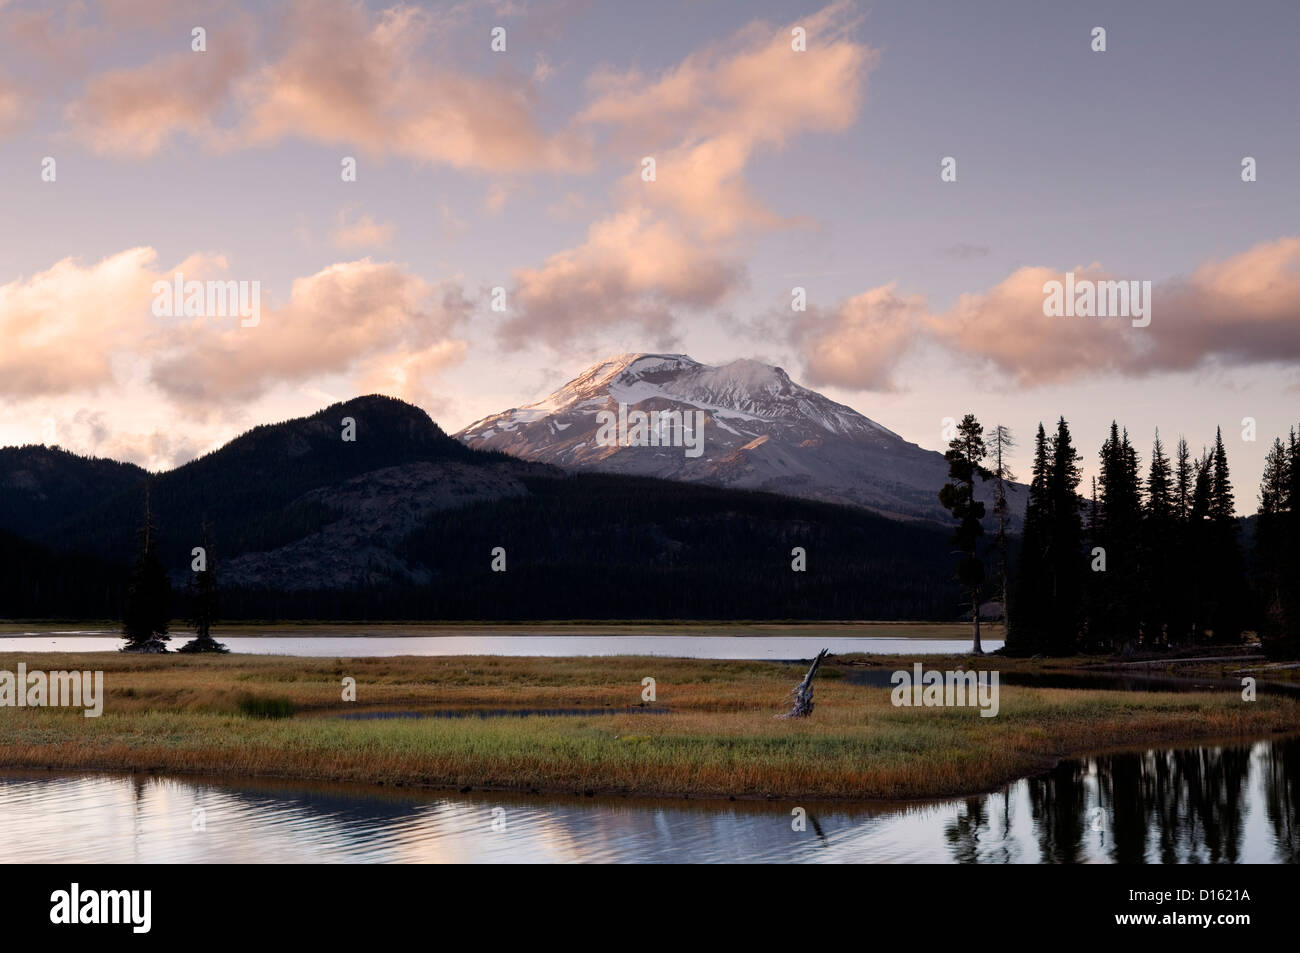 OR00491-00....OREGON - South Sister as viewed from Sparks Lake in the Deschutes National Forest. - Stock Image